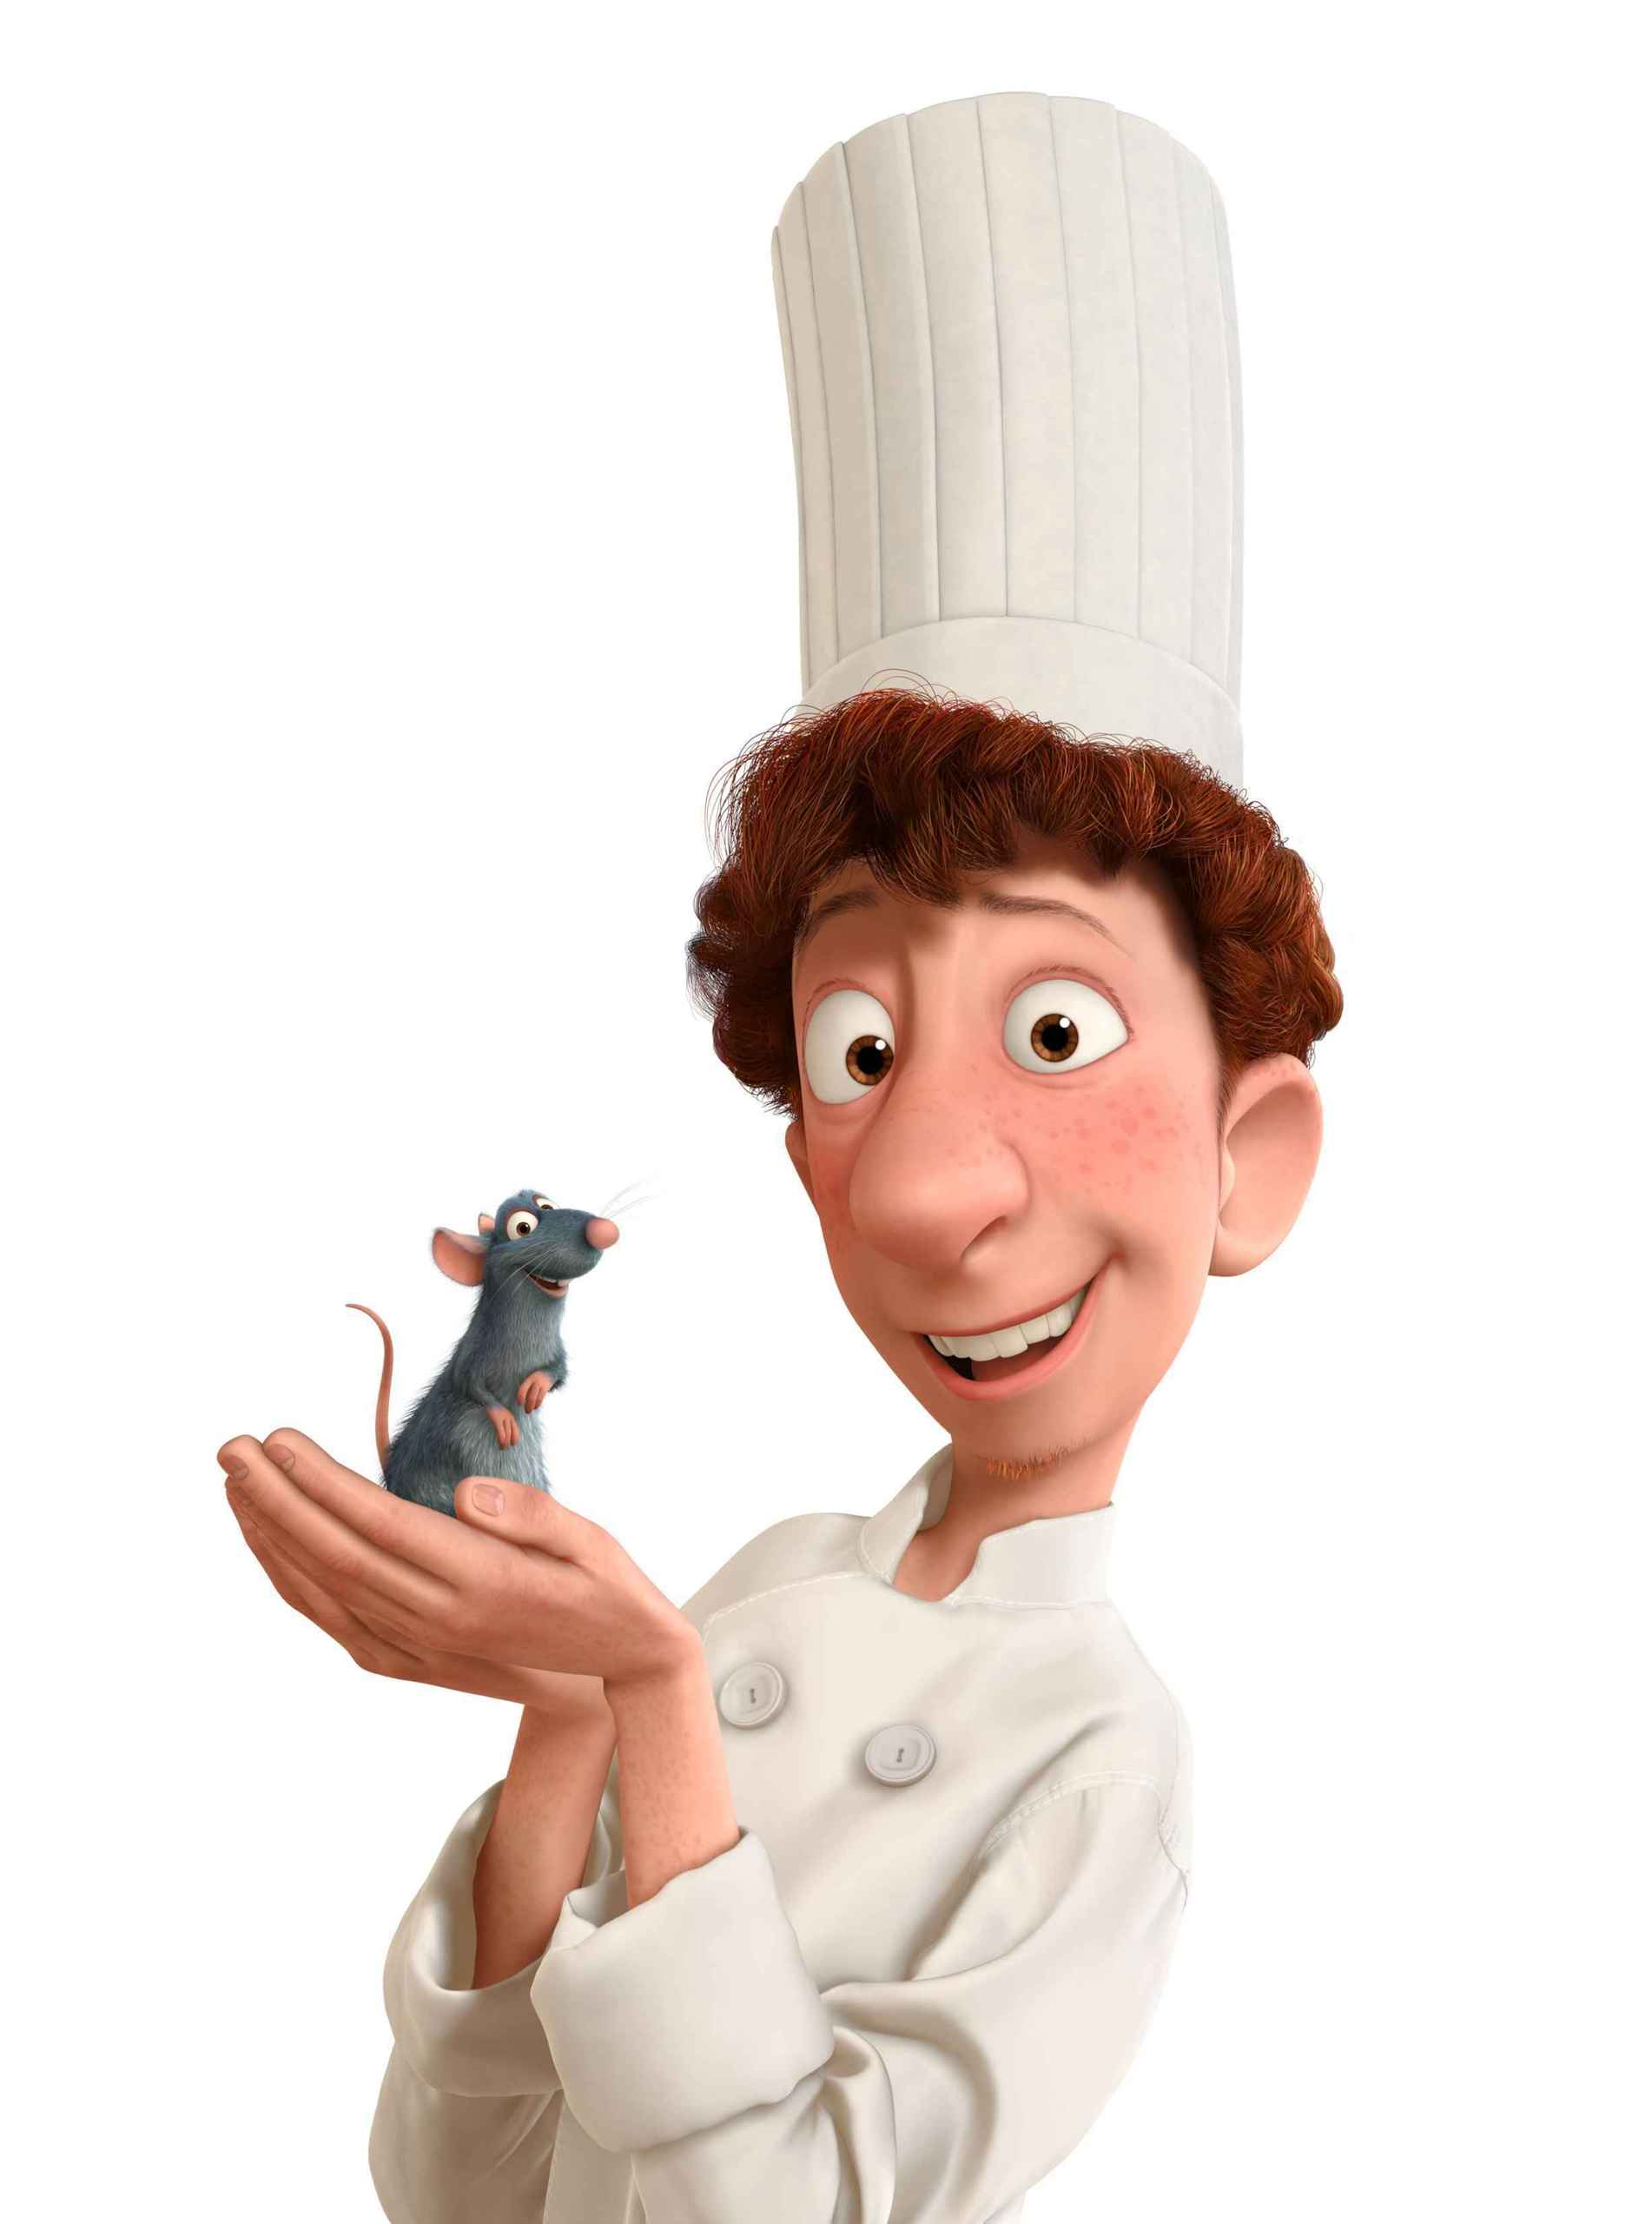 Ratatouille Production Stills ratatouille 1847049 1902 2560 Counting Down Pixars Films From Worst to First (Formerly I Am Pixars Willing Bitch)